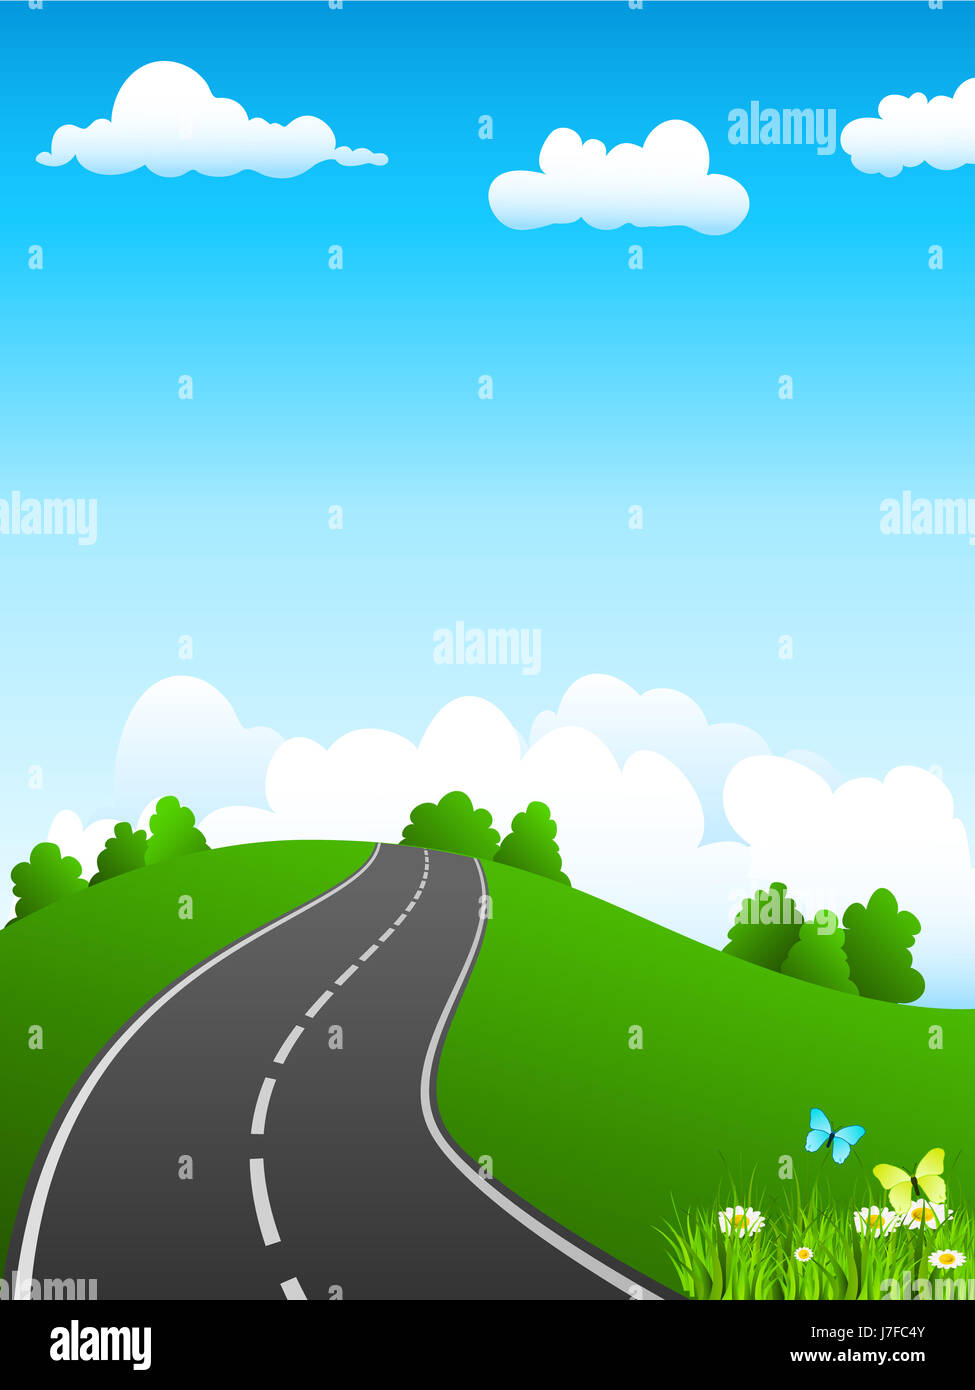 asphalt spring outing landscape scenery countryside nature street road drive - Stock Image